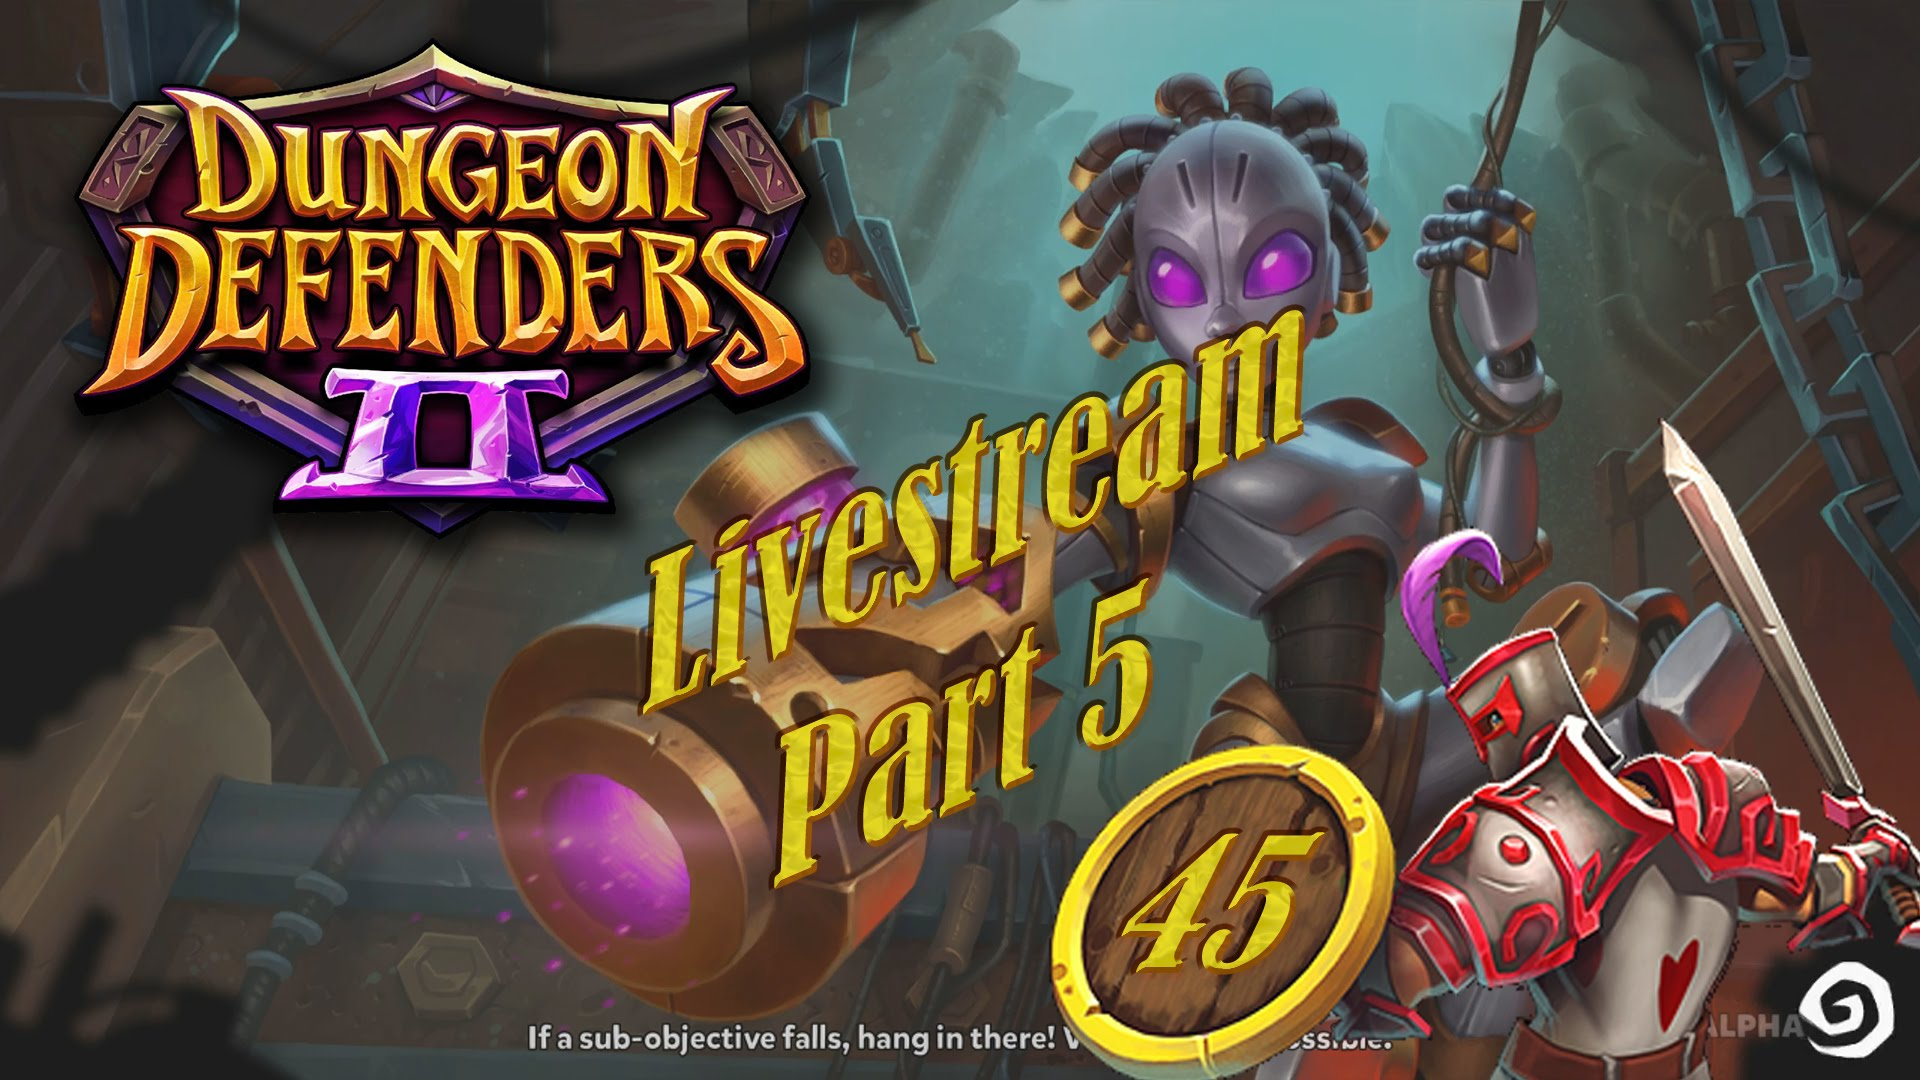 Dungeon Defenders 2 Lets Play Gameplay Season 2 Ep 45